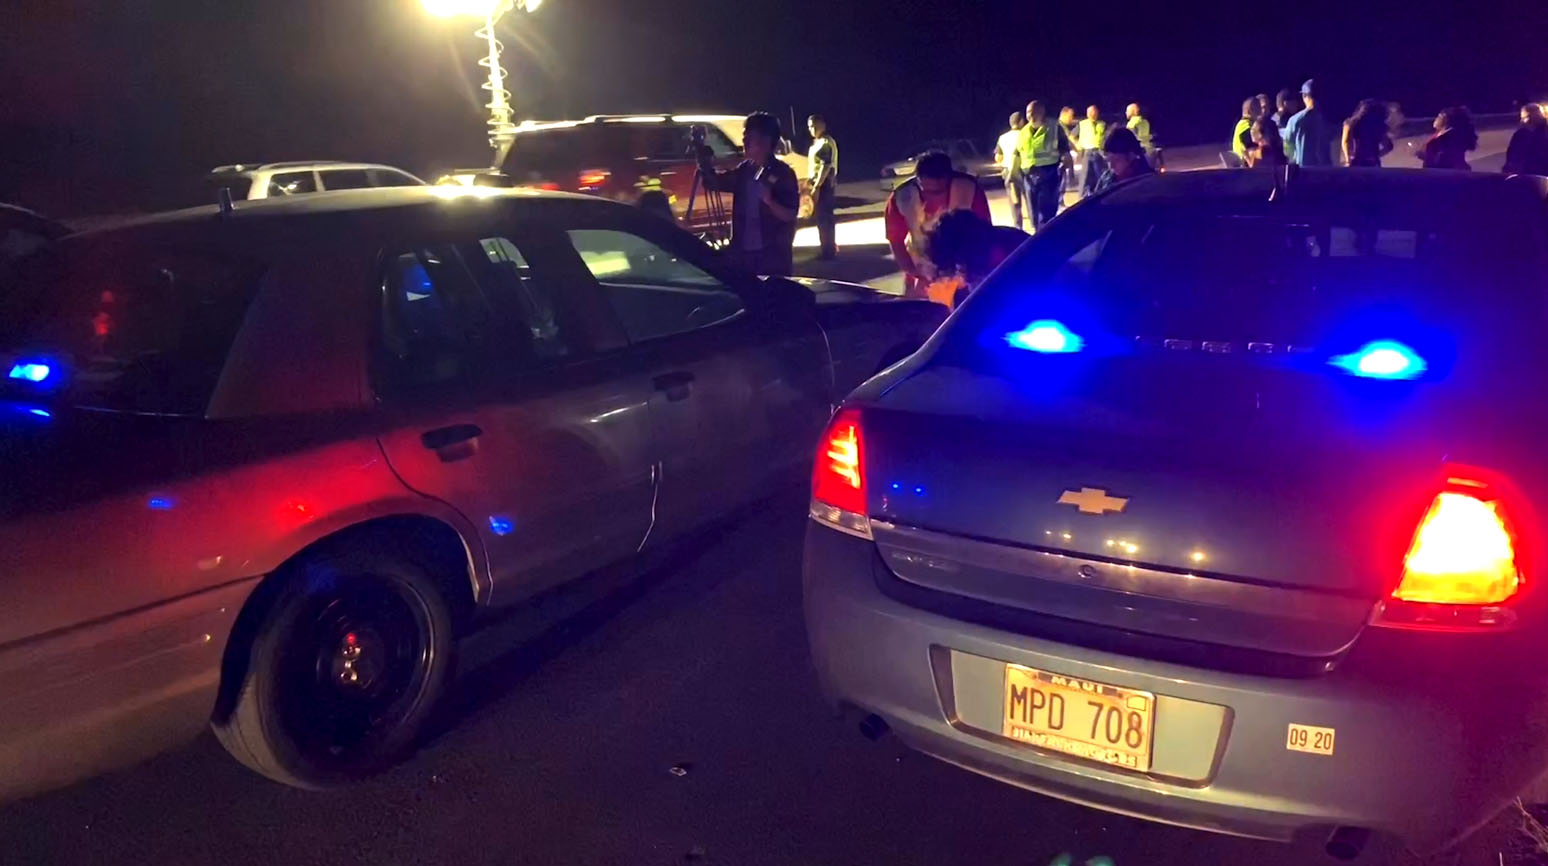 Weekend DUI Enforcement Nets 8 Arrests, 5 Vehicles Towed on Maui